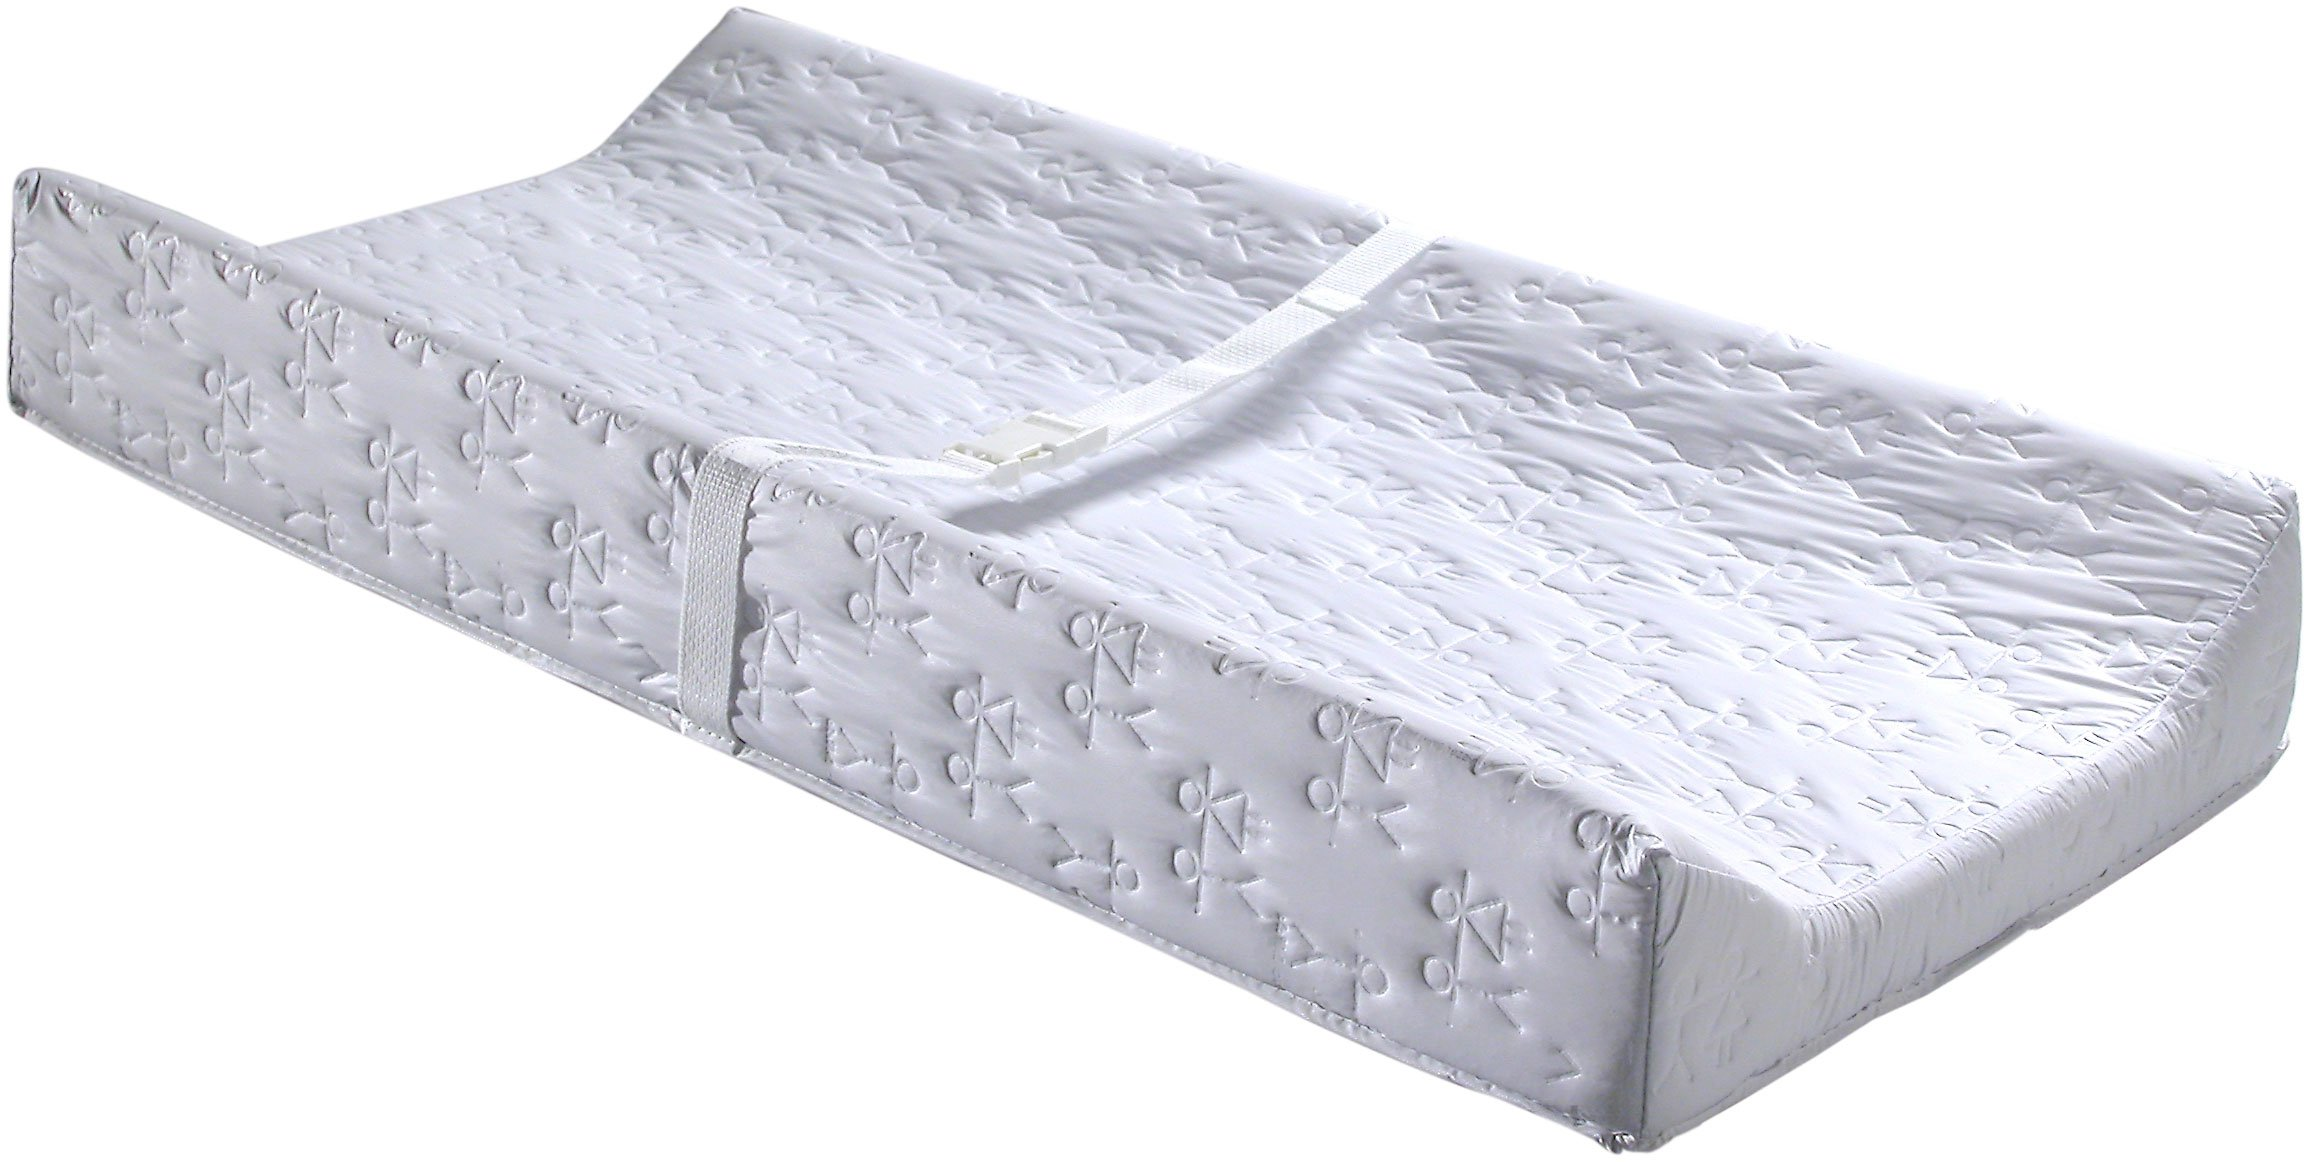 Child Craft Contour Changing Pad with Safety Belt, White